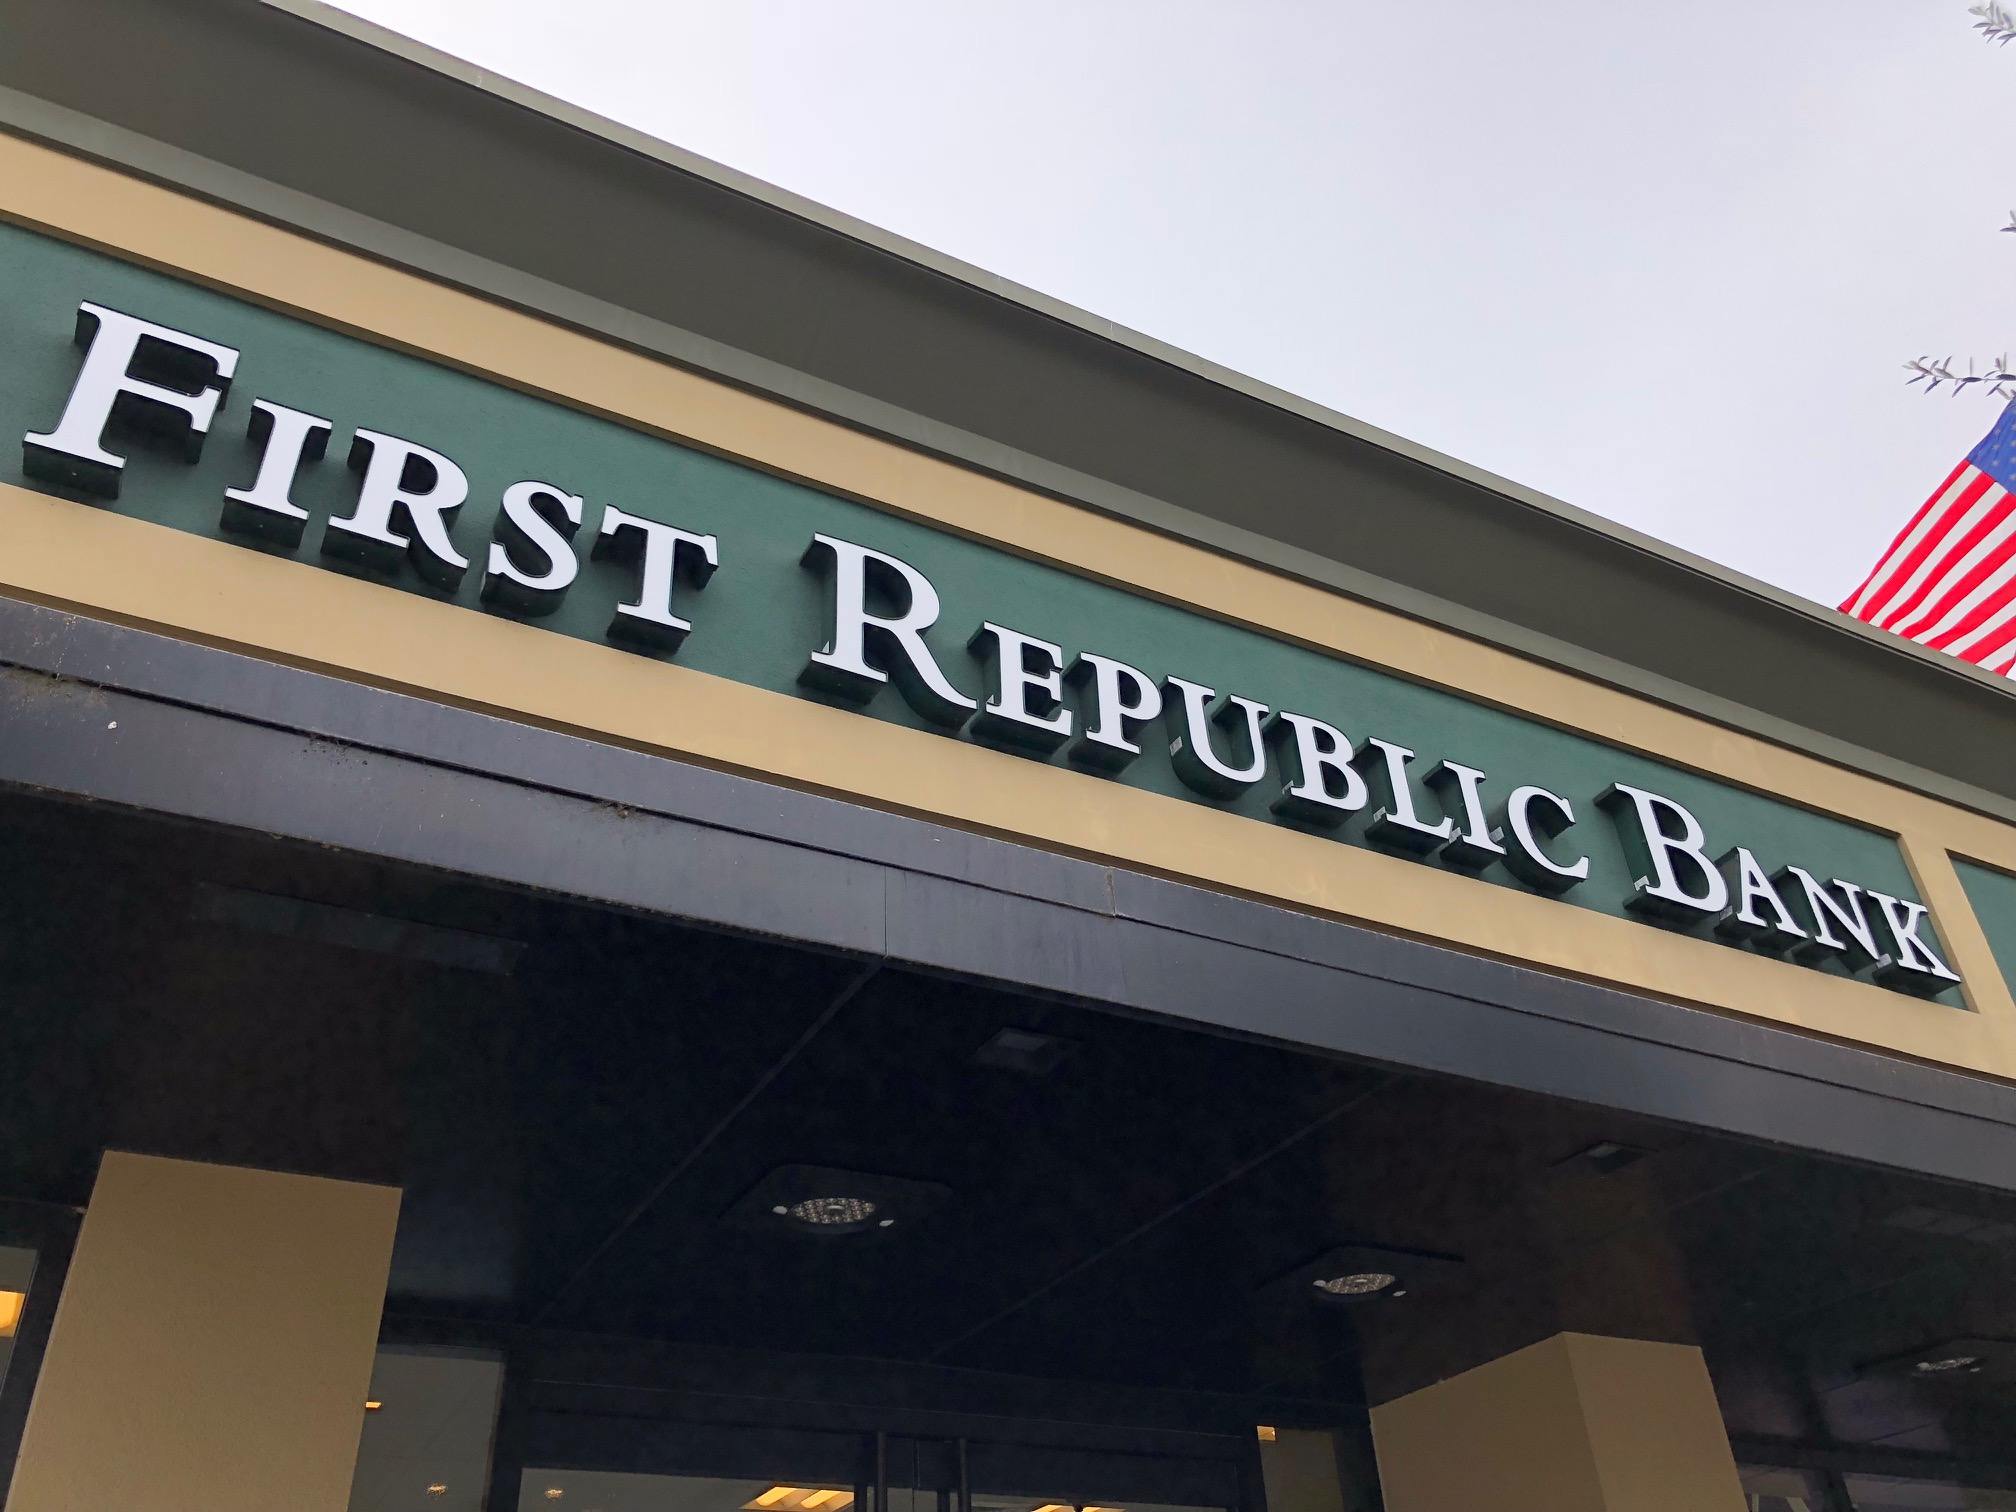 First Republic Bank Checking 2020 Review - Should You Open?